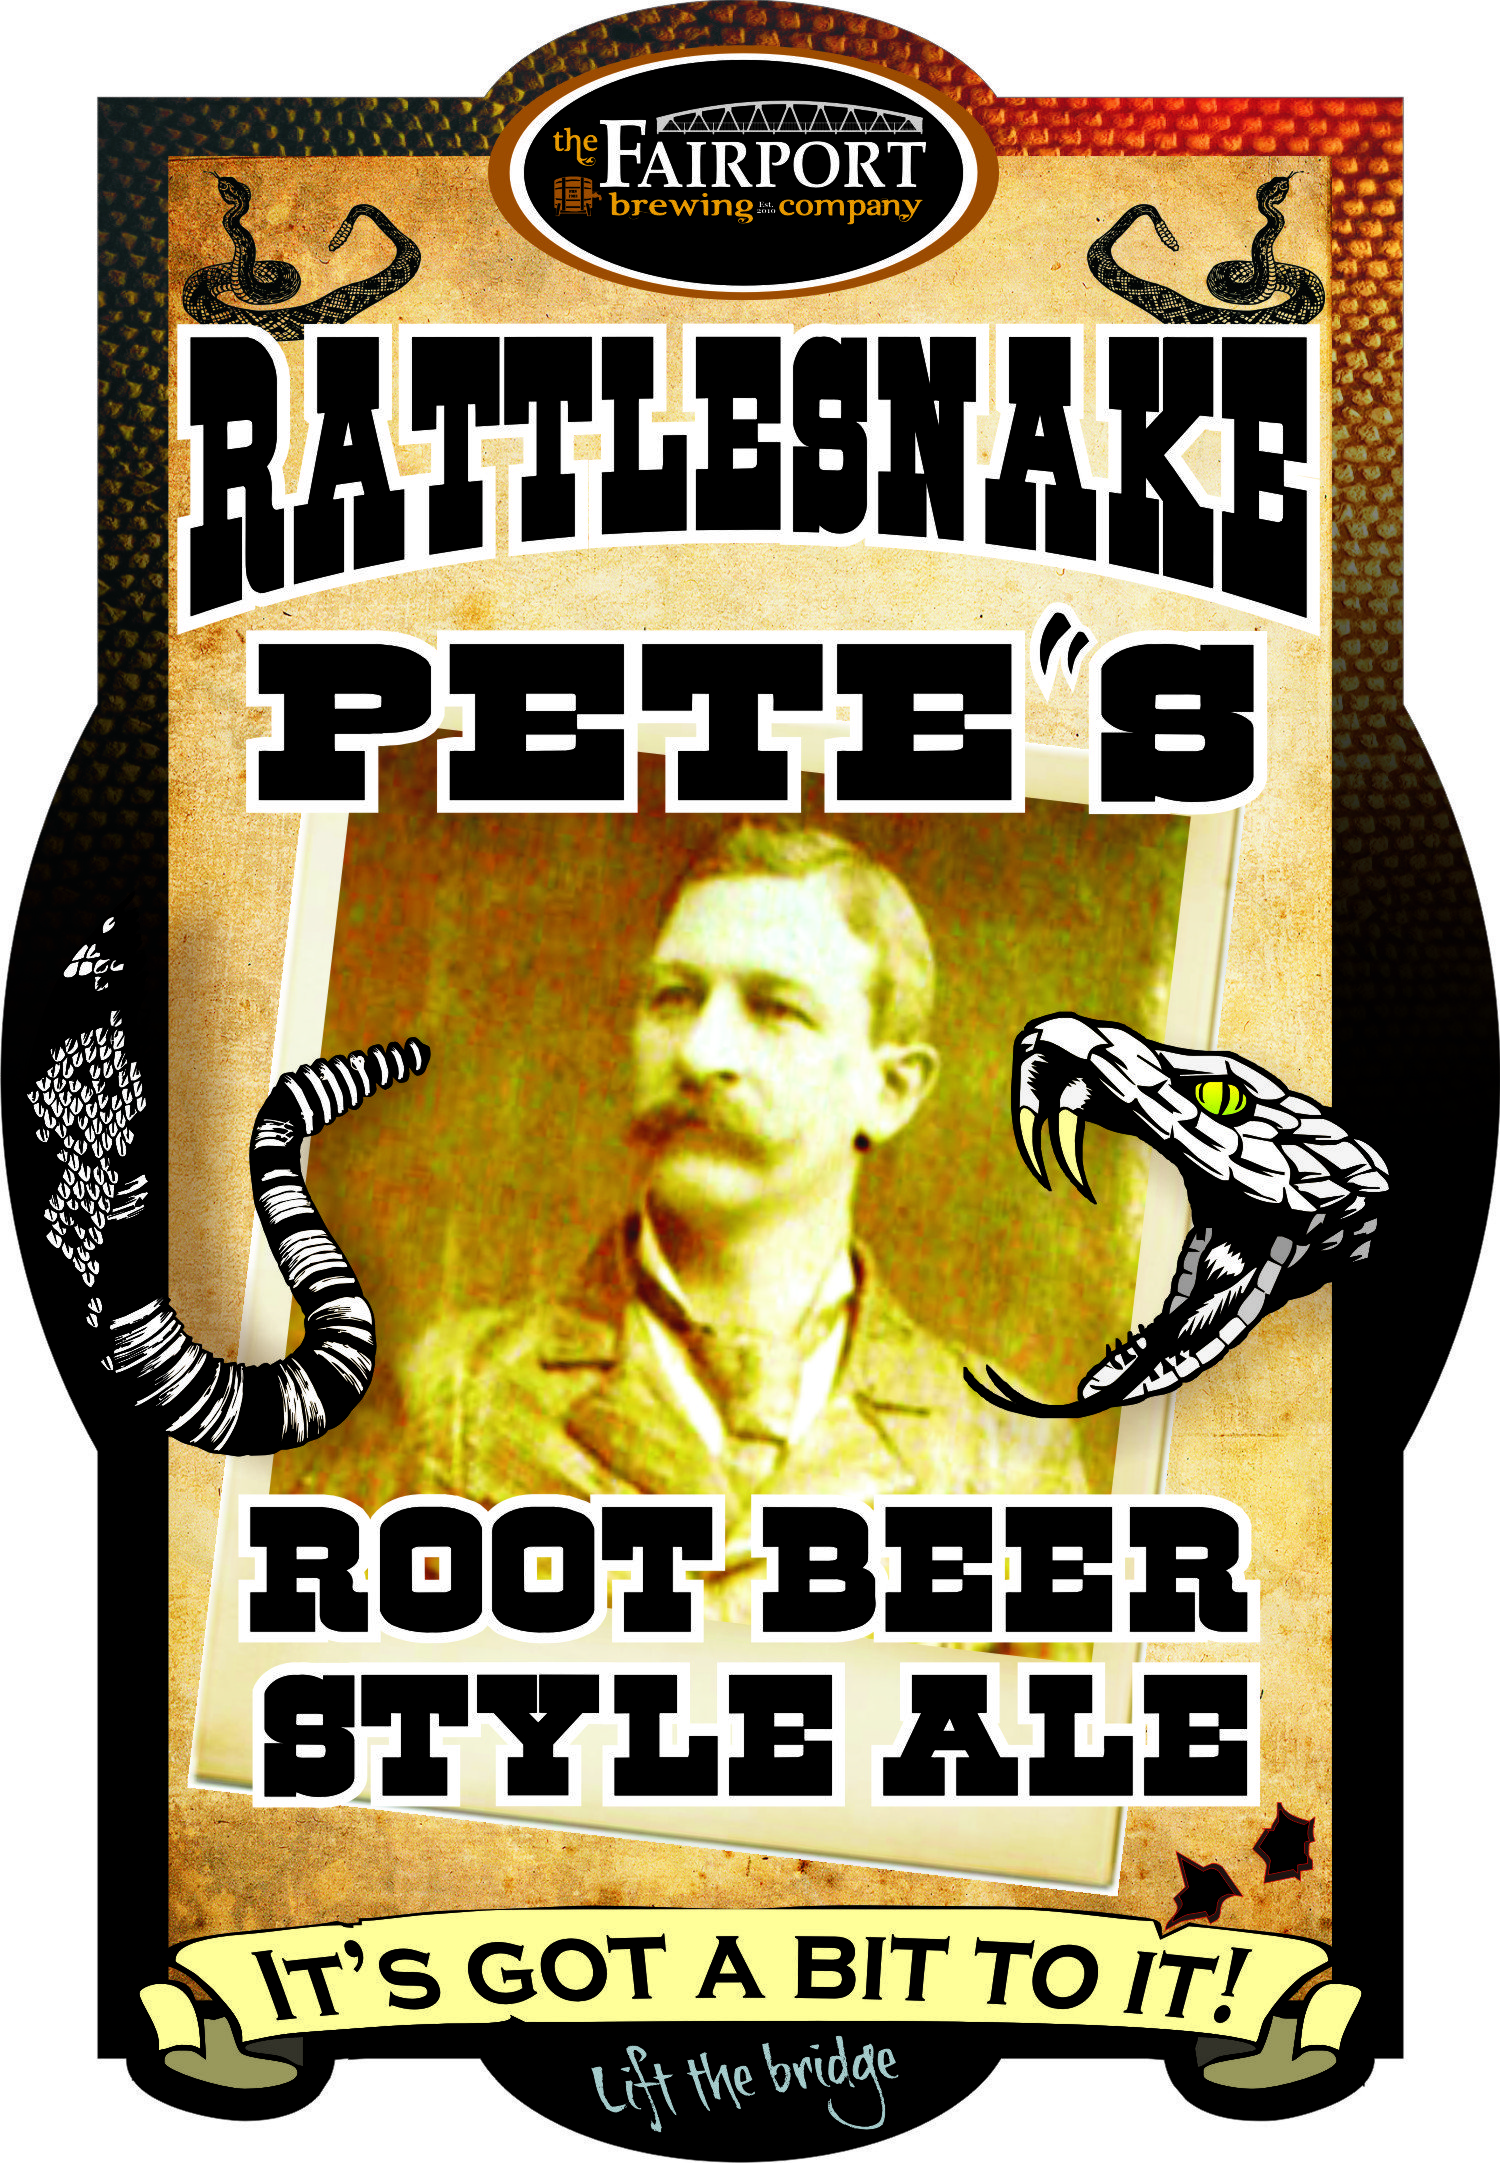 Rattlesnake Pete's Root Beer